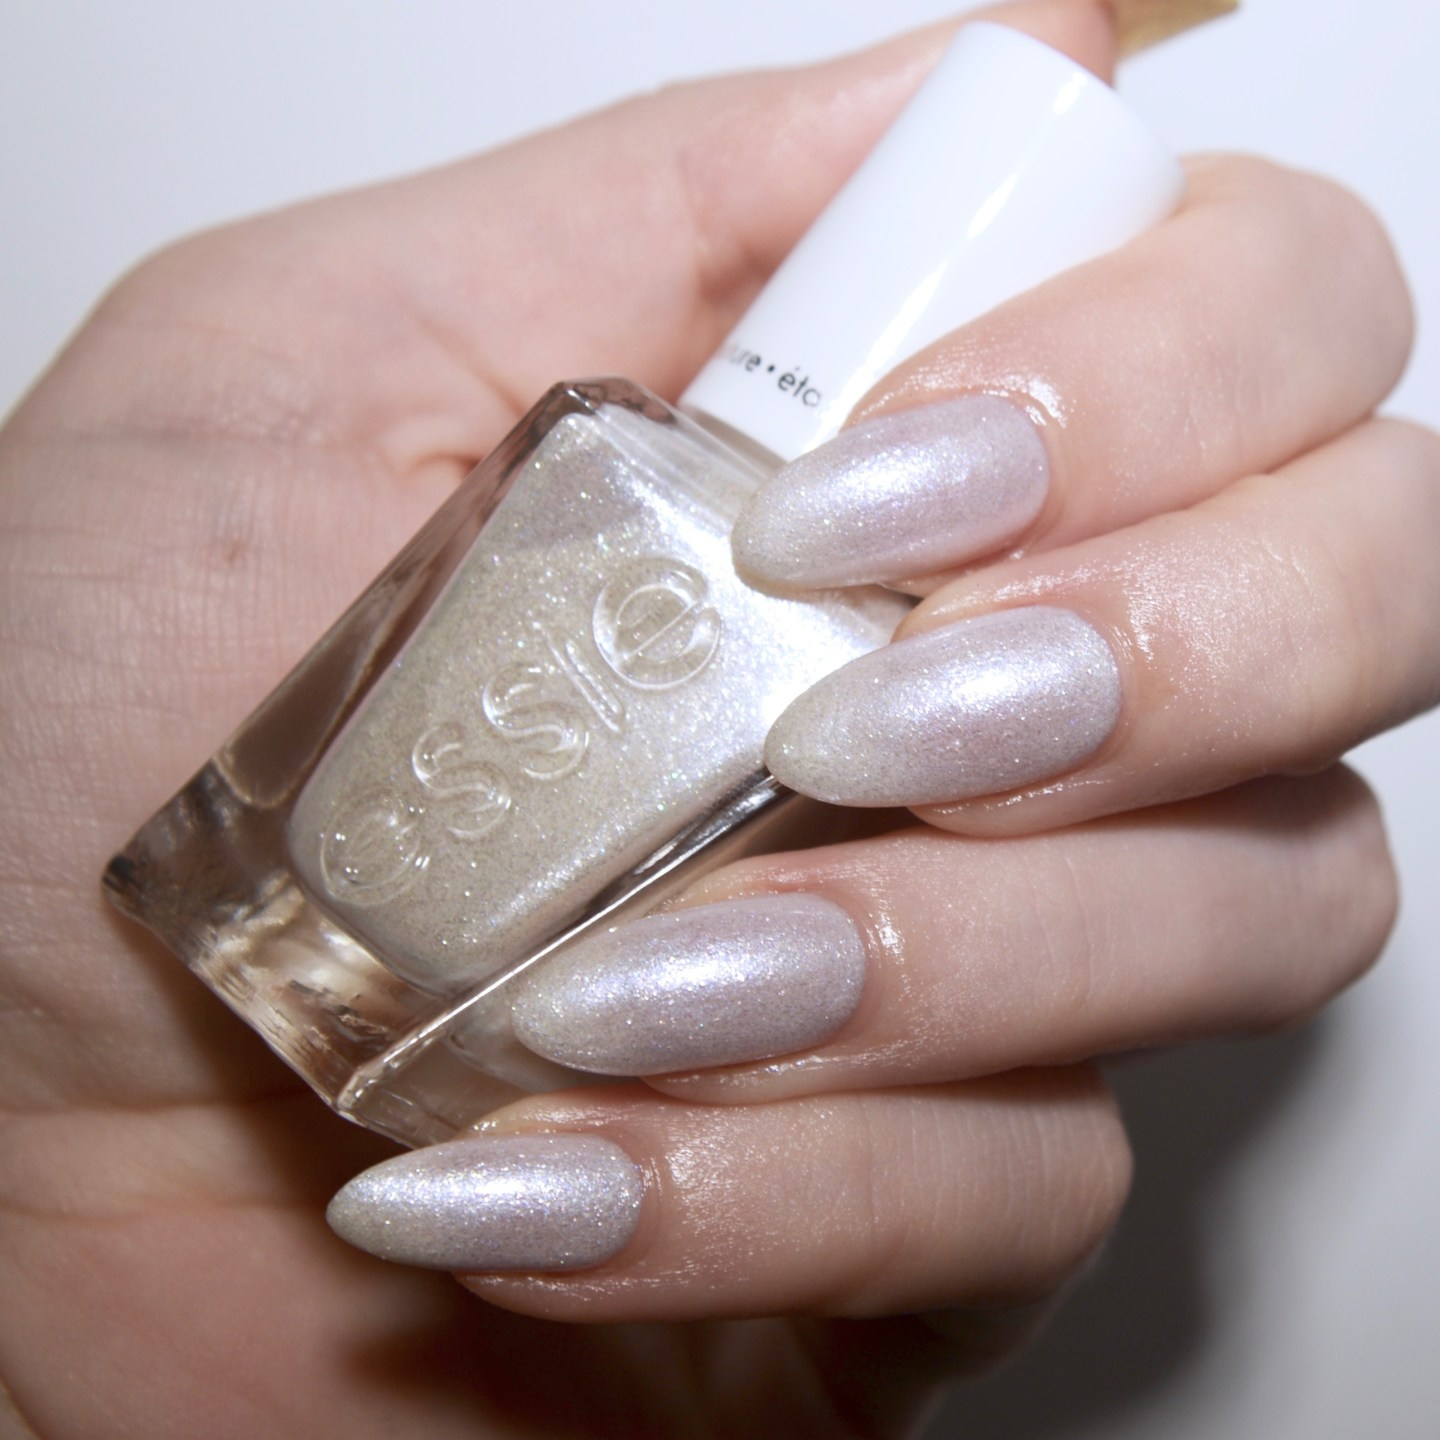 Essie Bridal 2017 'Lace To The Alter'